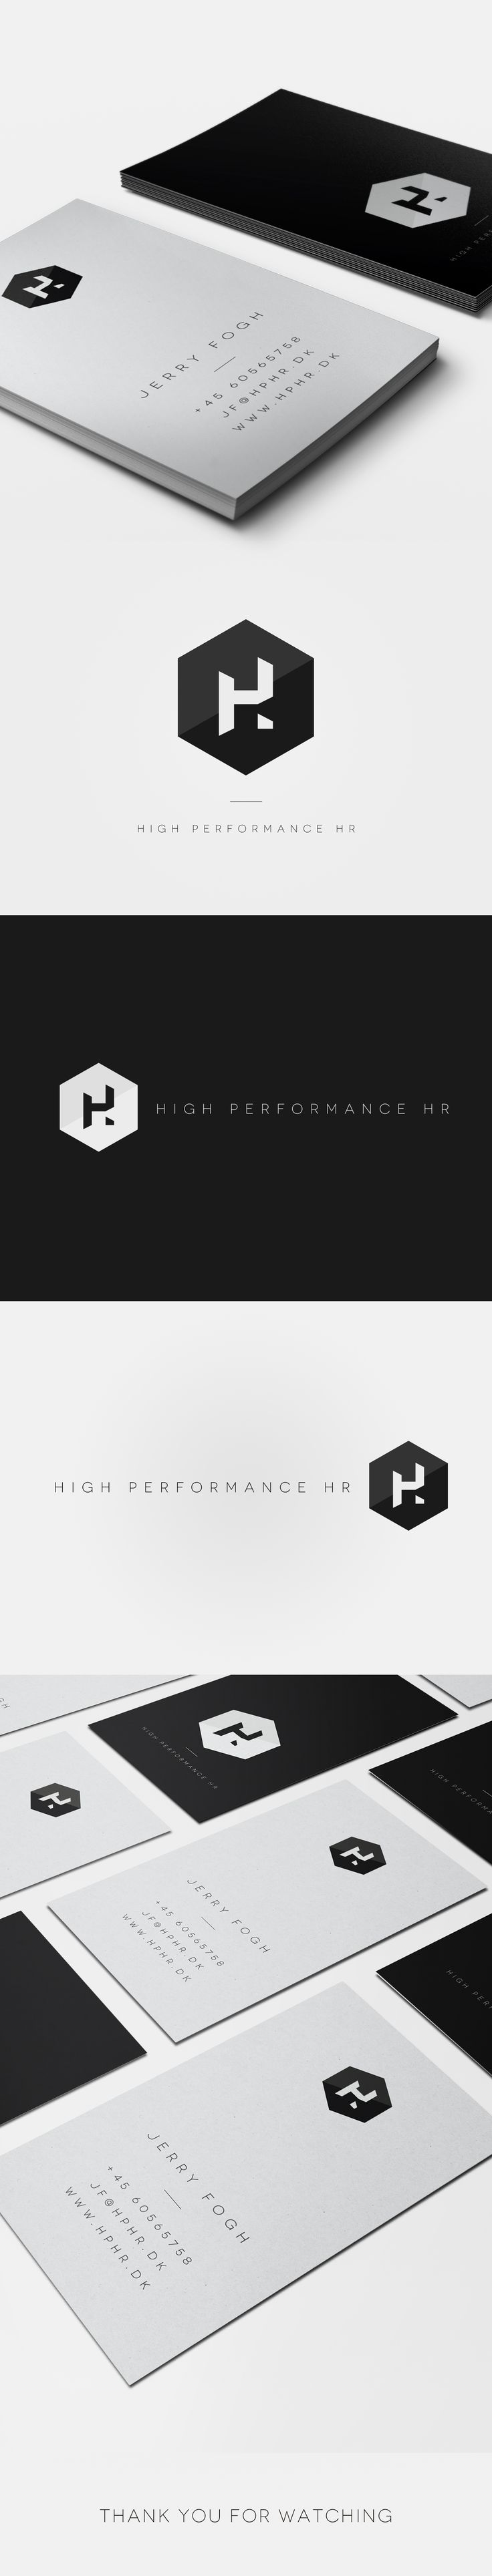 High Performance HR - Art Direction, Branding. High Performance HR makes it possible to scale the HR investments to fit clients needs regarding both: Size, Speed and Economy. They want to support people and organizations in their efforts to grow. I've designed the new logo and business card look for High Performance HR. Logo Design, Visual Identity, Color palette, Business Card Design, High Performance HR.